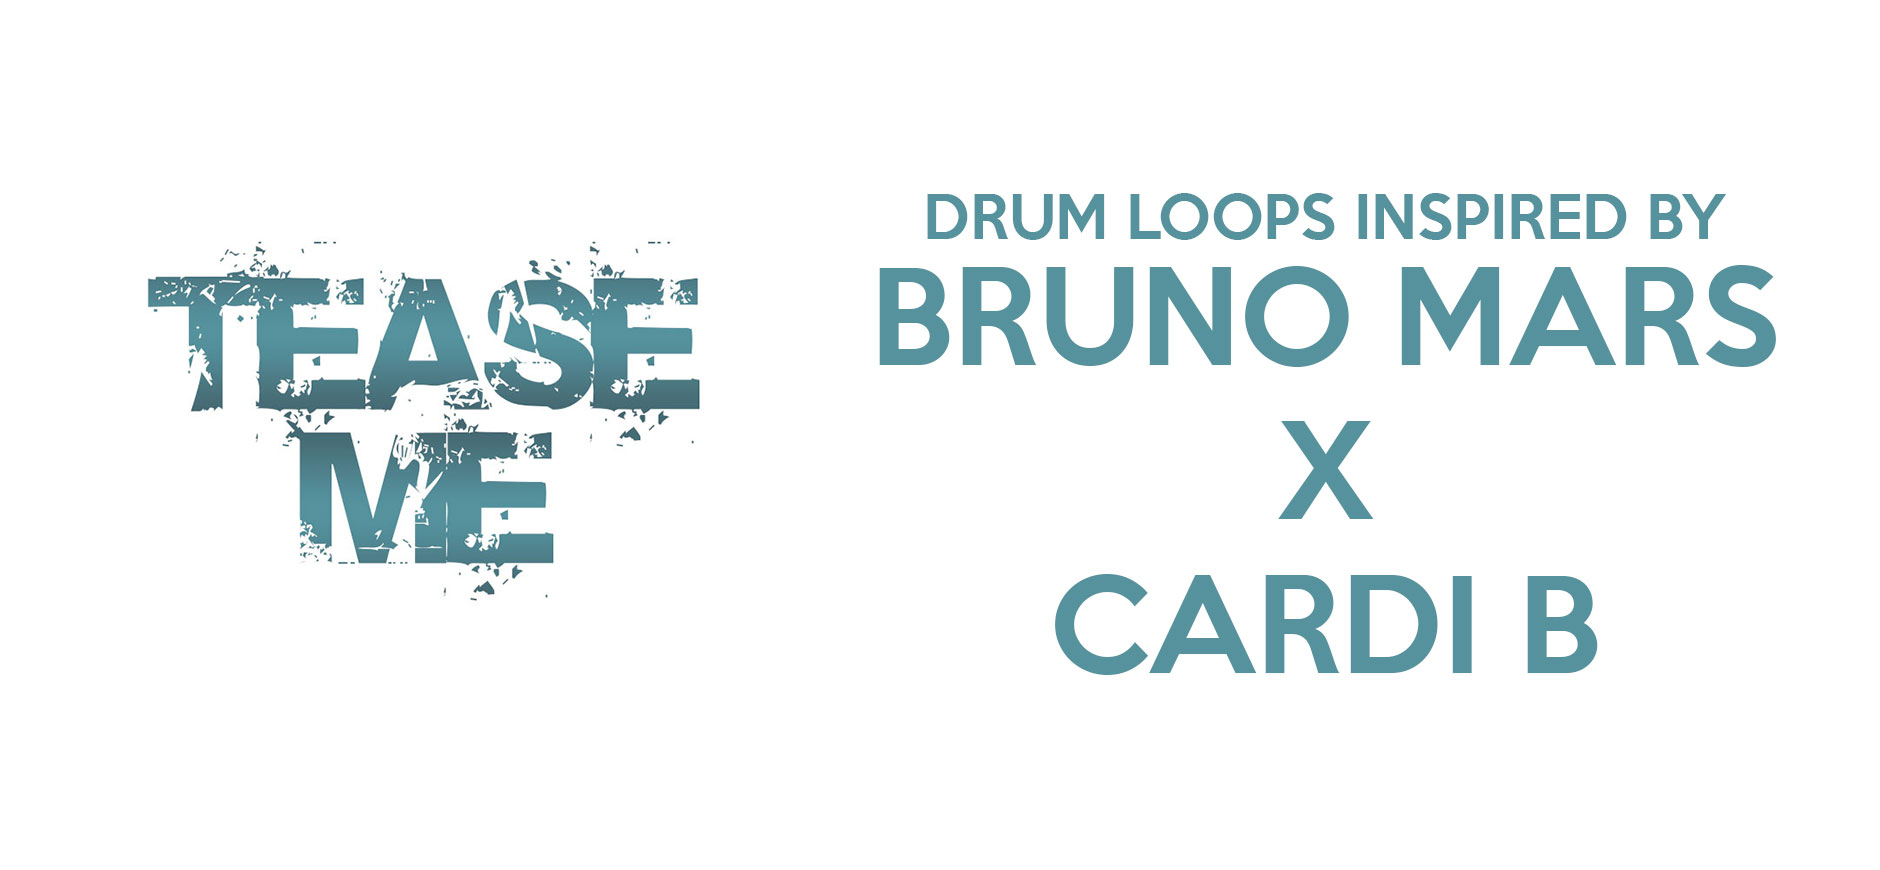 Please Me Drum Loops Kit Inspired by Bruno Mars & Cardi B